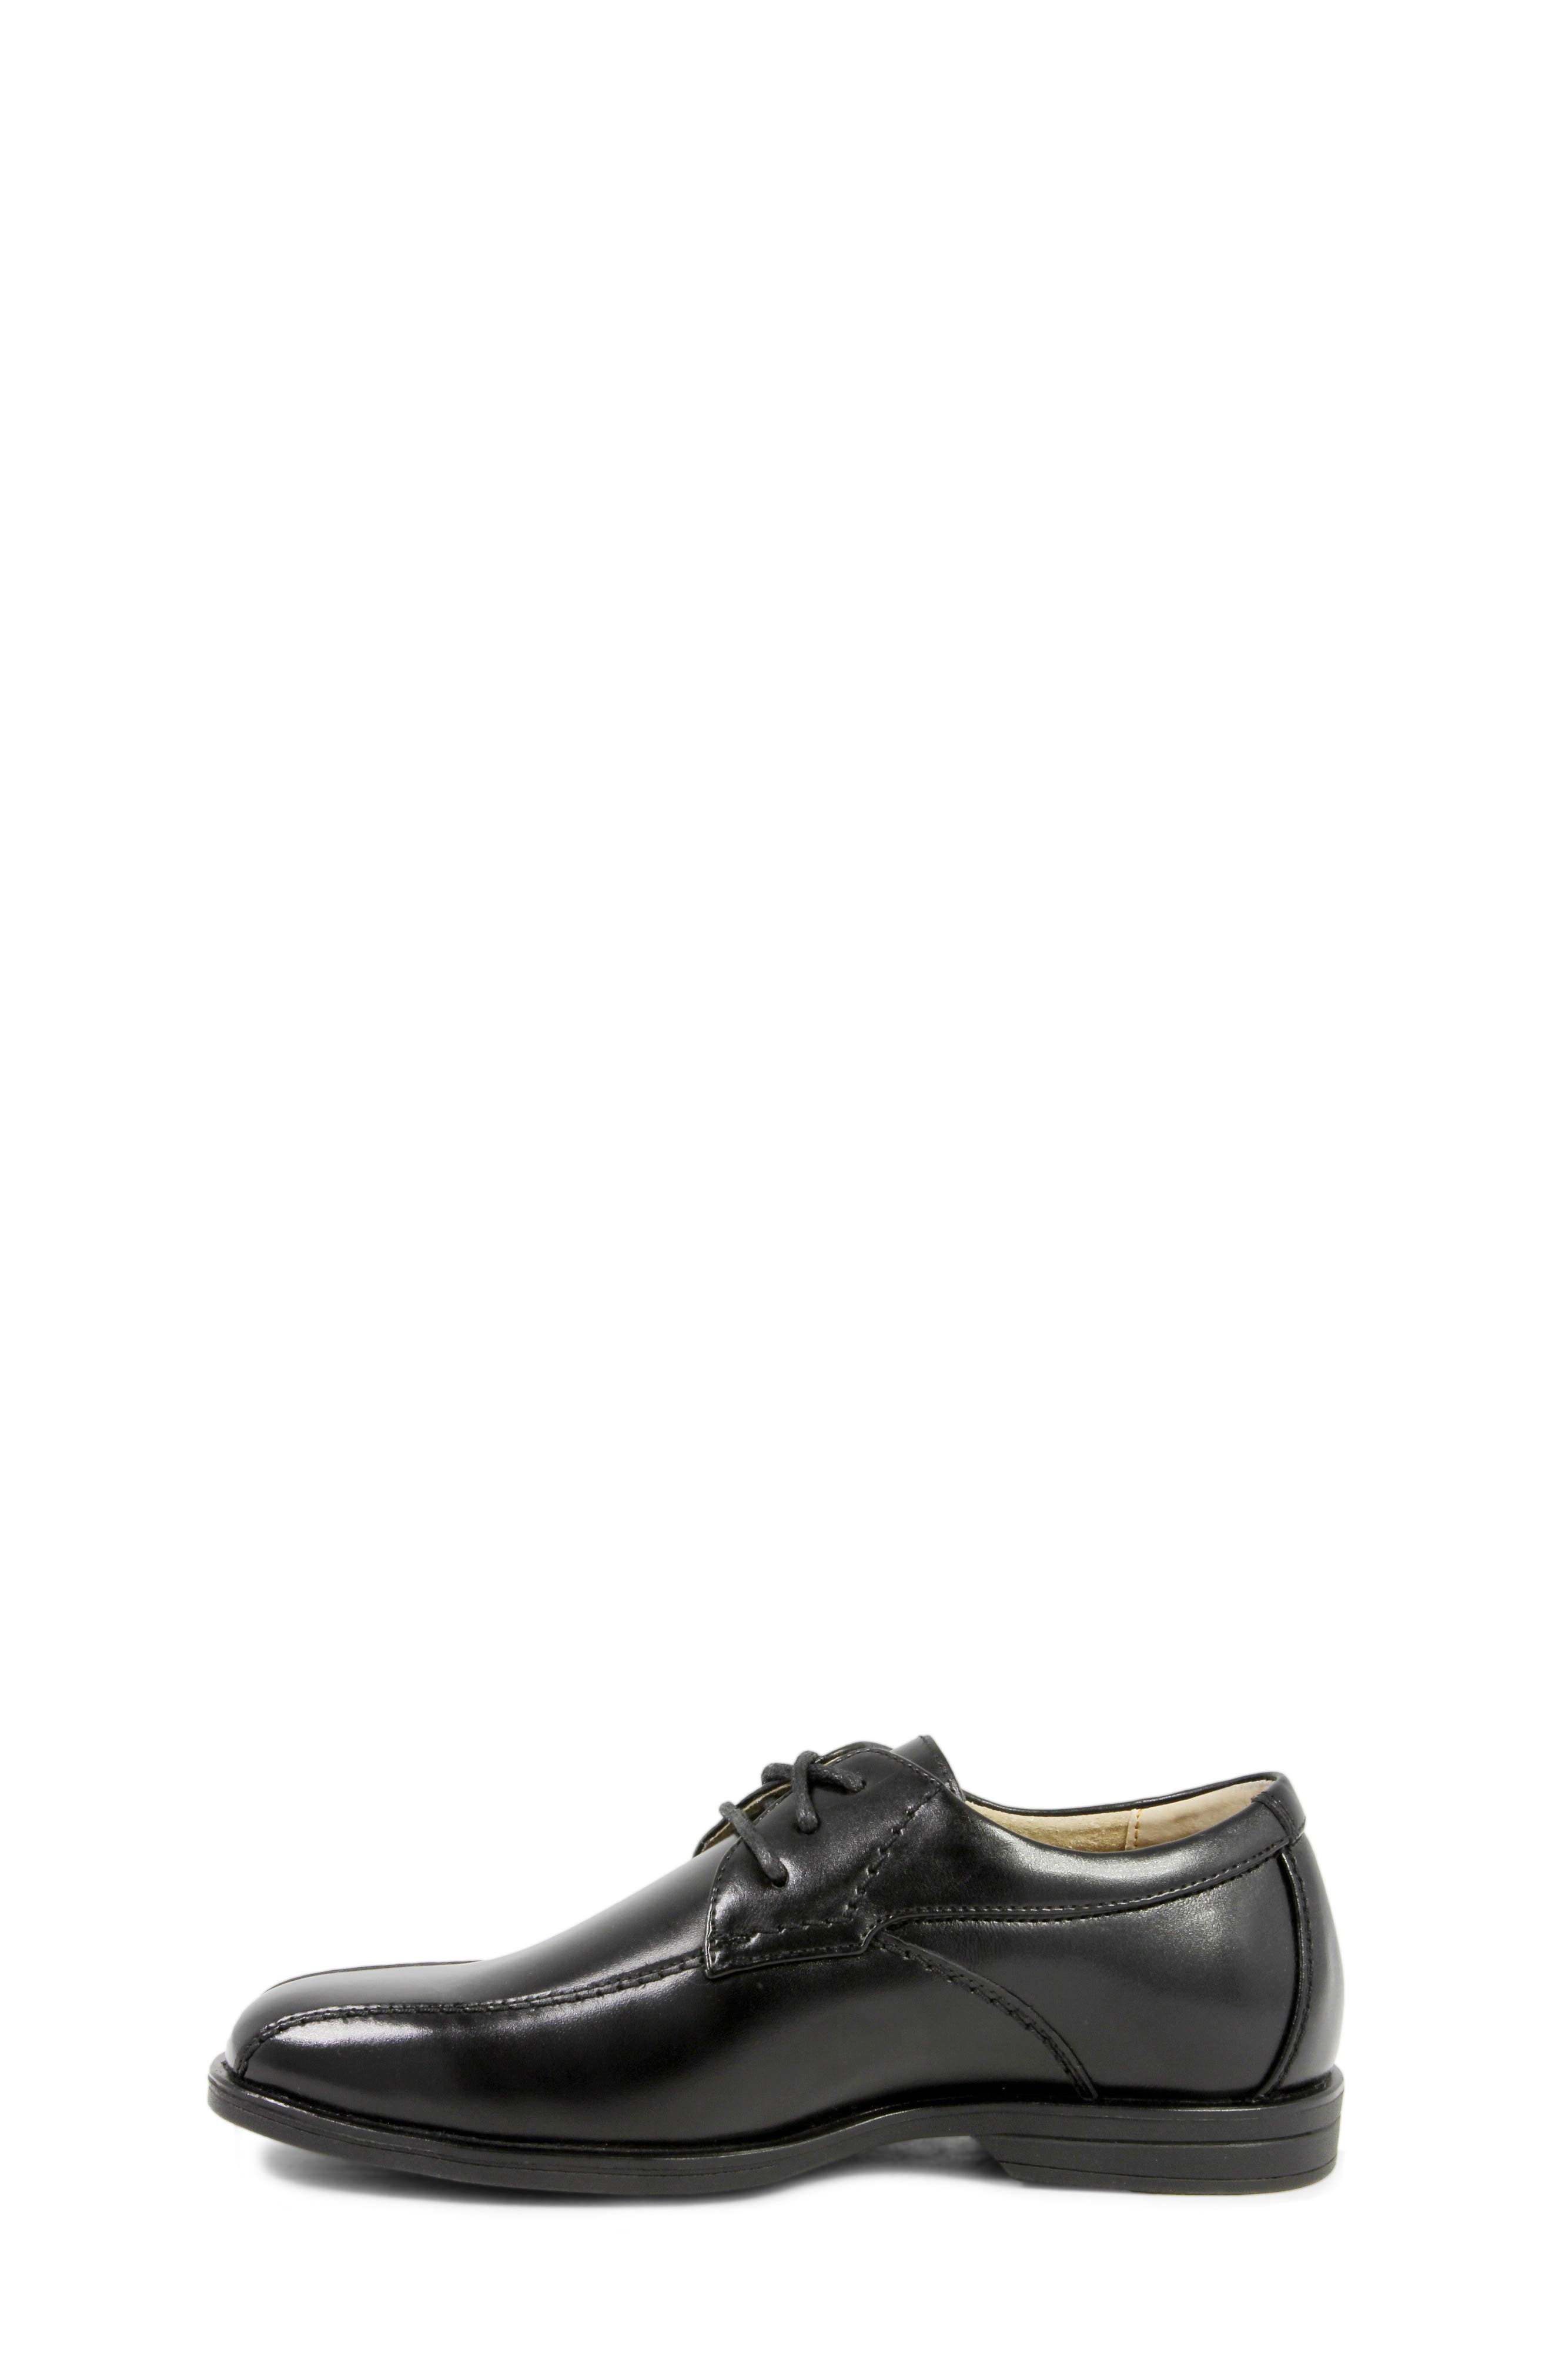 'Reveal' Oxford,                             Alternate thumbnail 8, color,                             BLACK